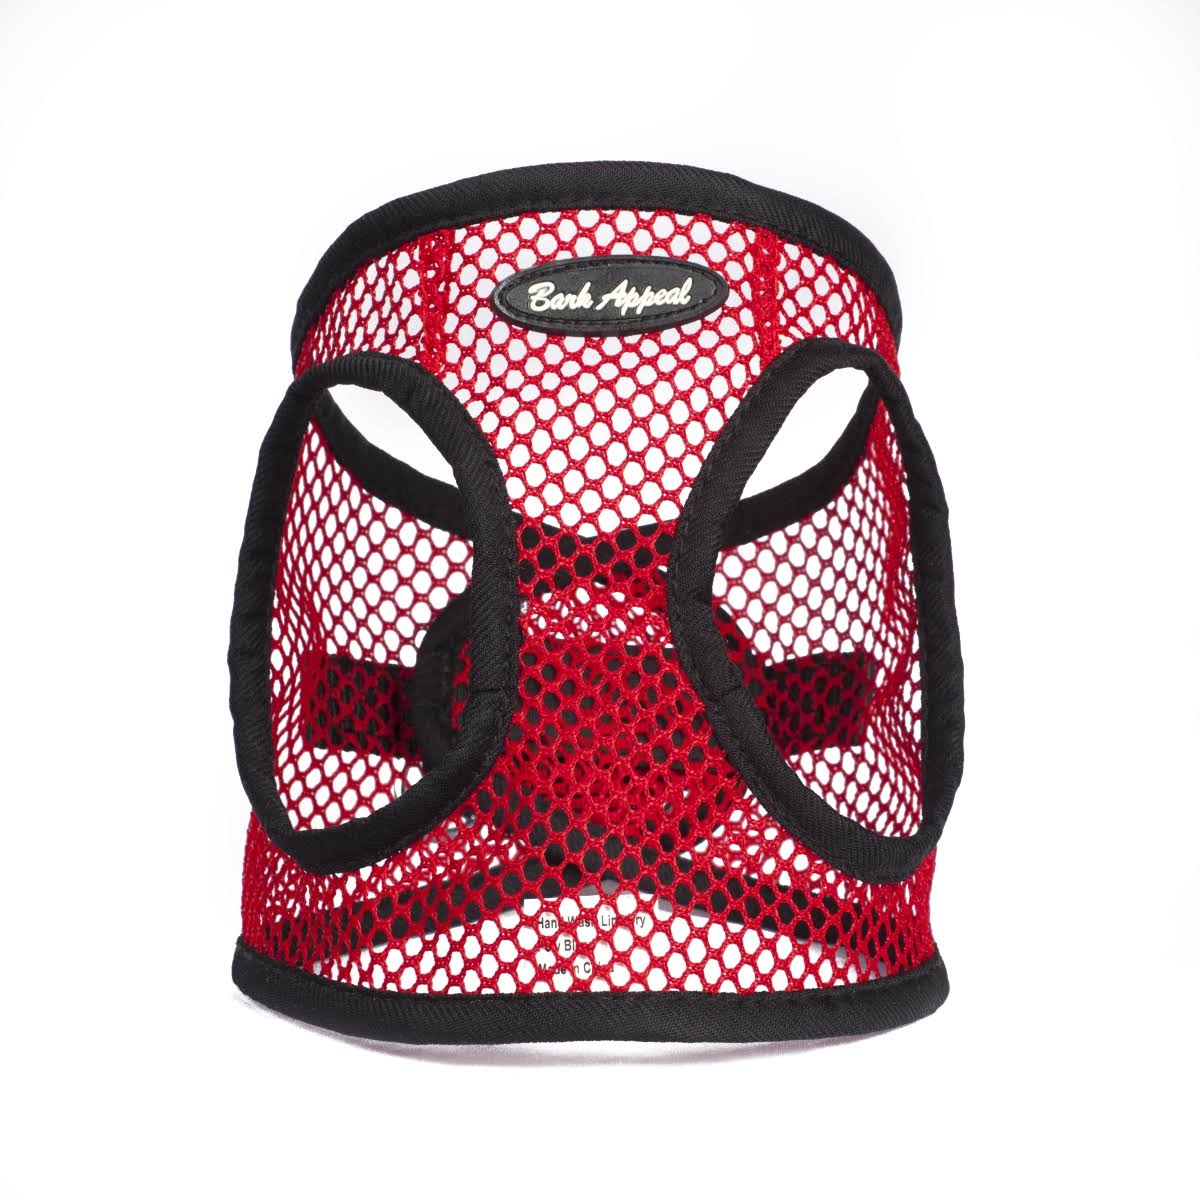 Bark Appeal SRNEW-L Netted EZ Wrap Harness Red - Large